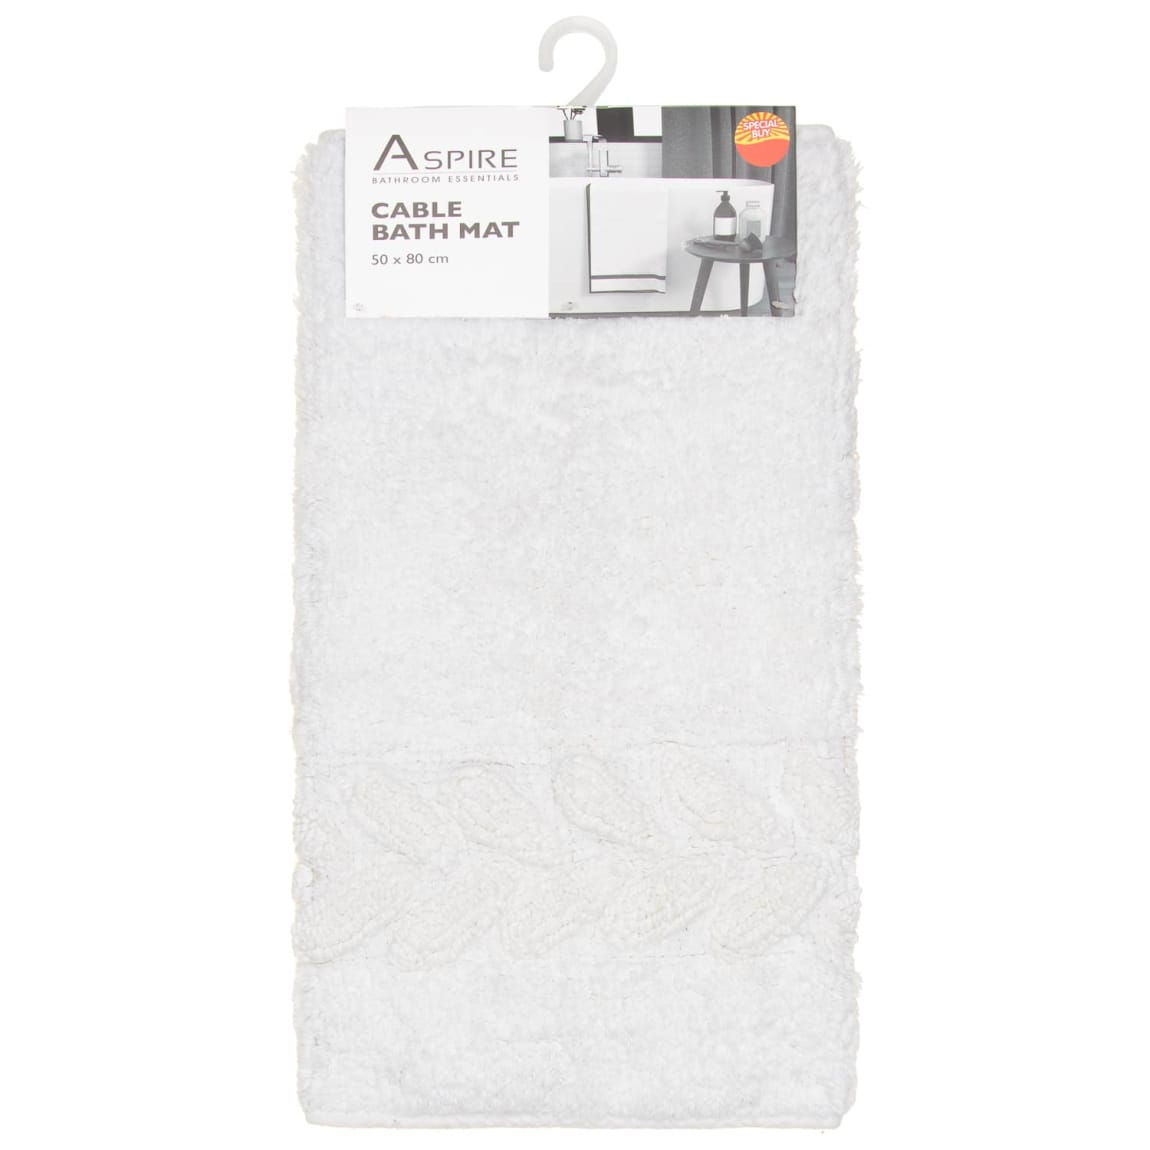 Cable Bath Mat 50 x 80cm - White